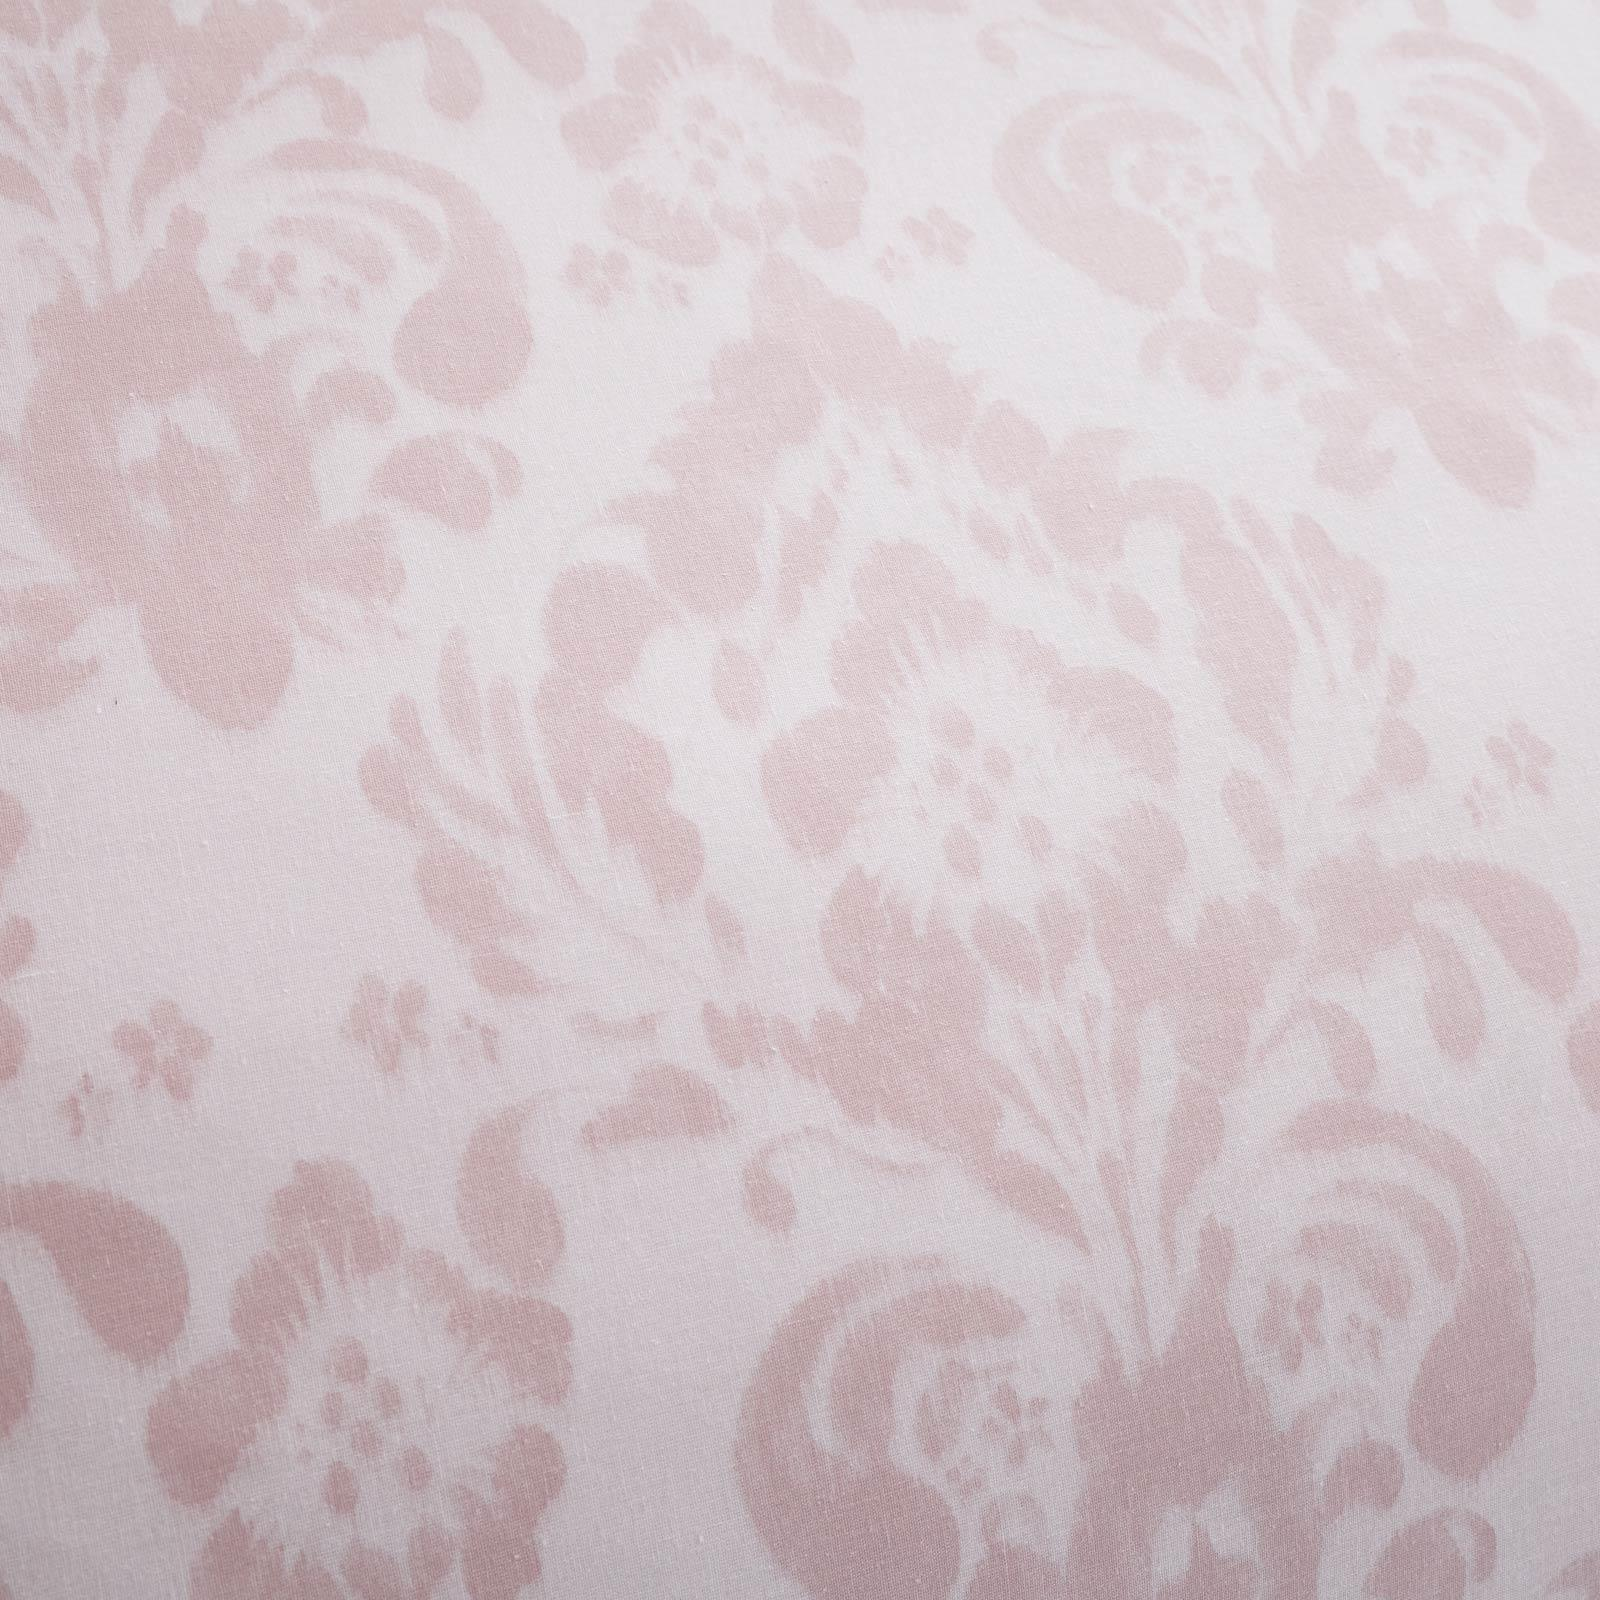 thumbnail 20 - Catherine Lansfield Damask Blush Duvet Covers Pink Grey Quilt Cover Bedding Sets